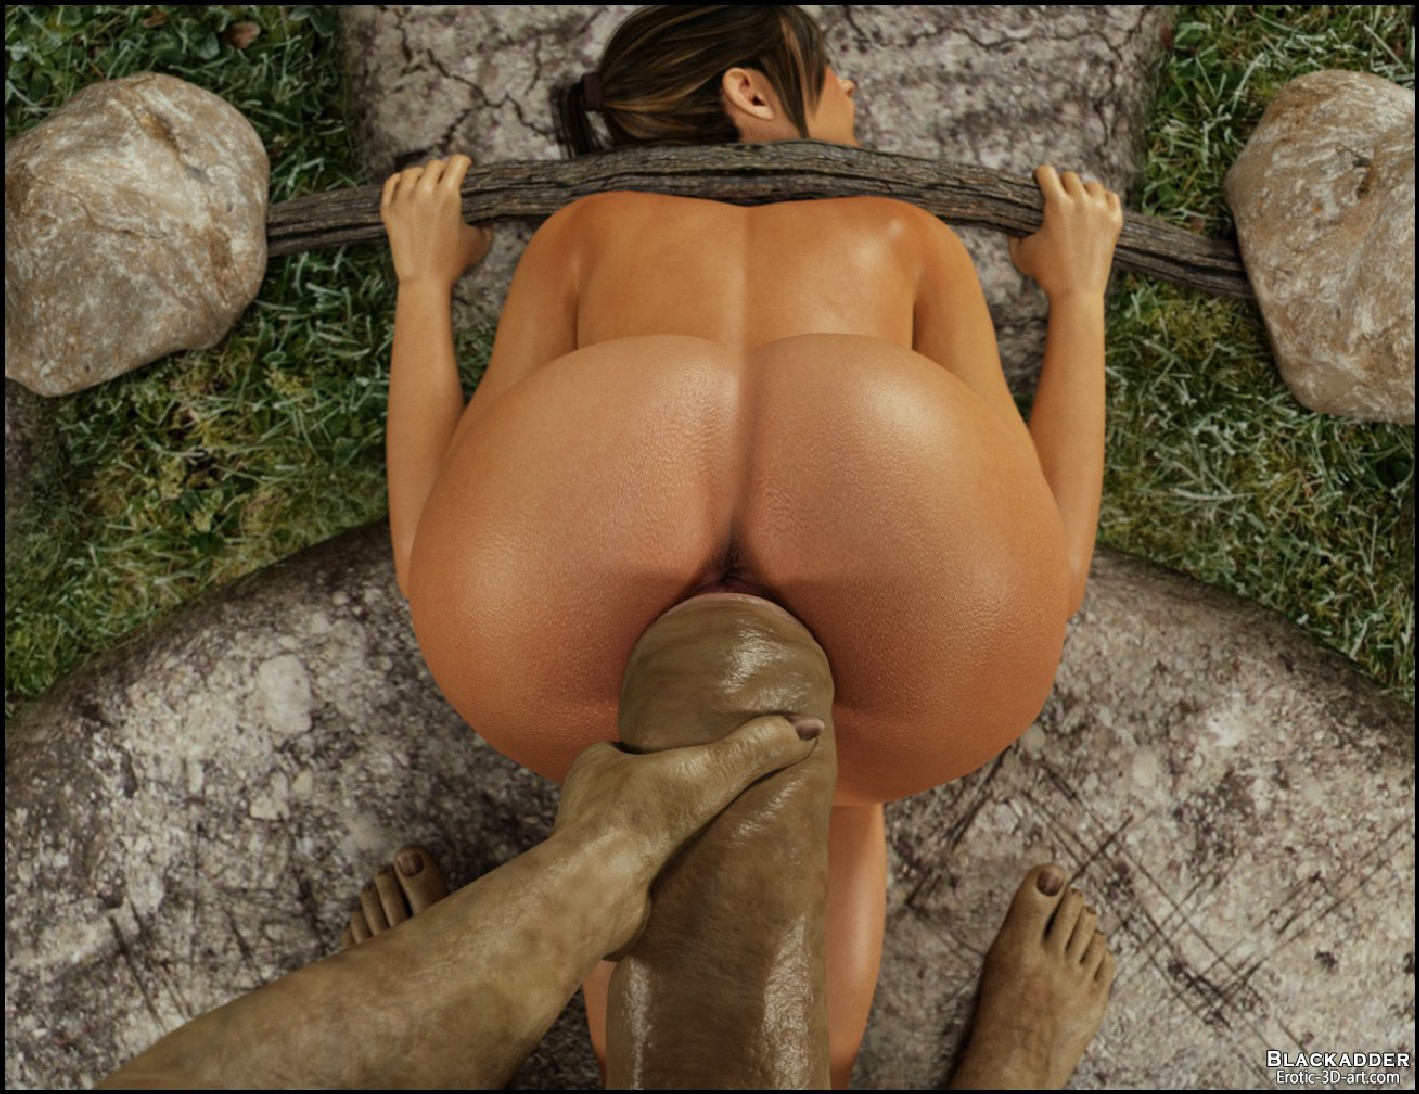 Anal in slime 3d adult galleries